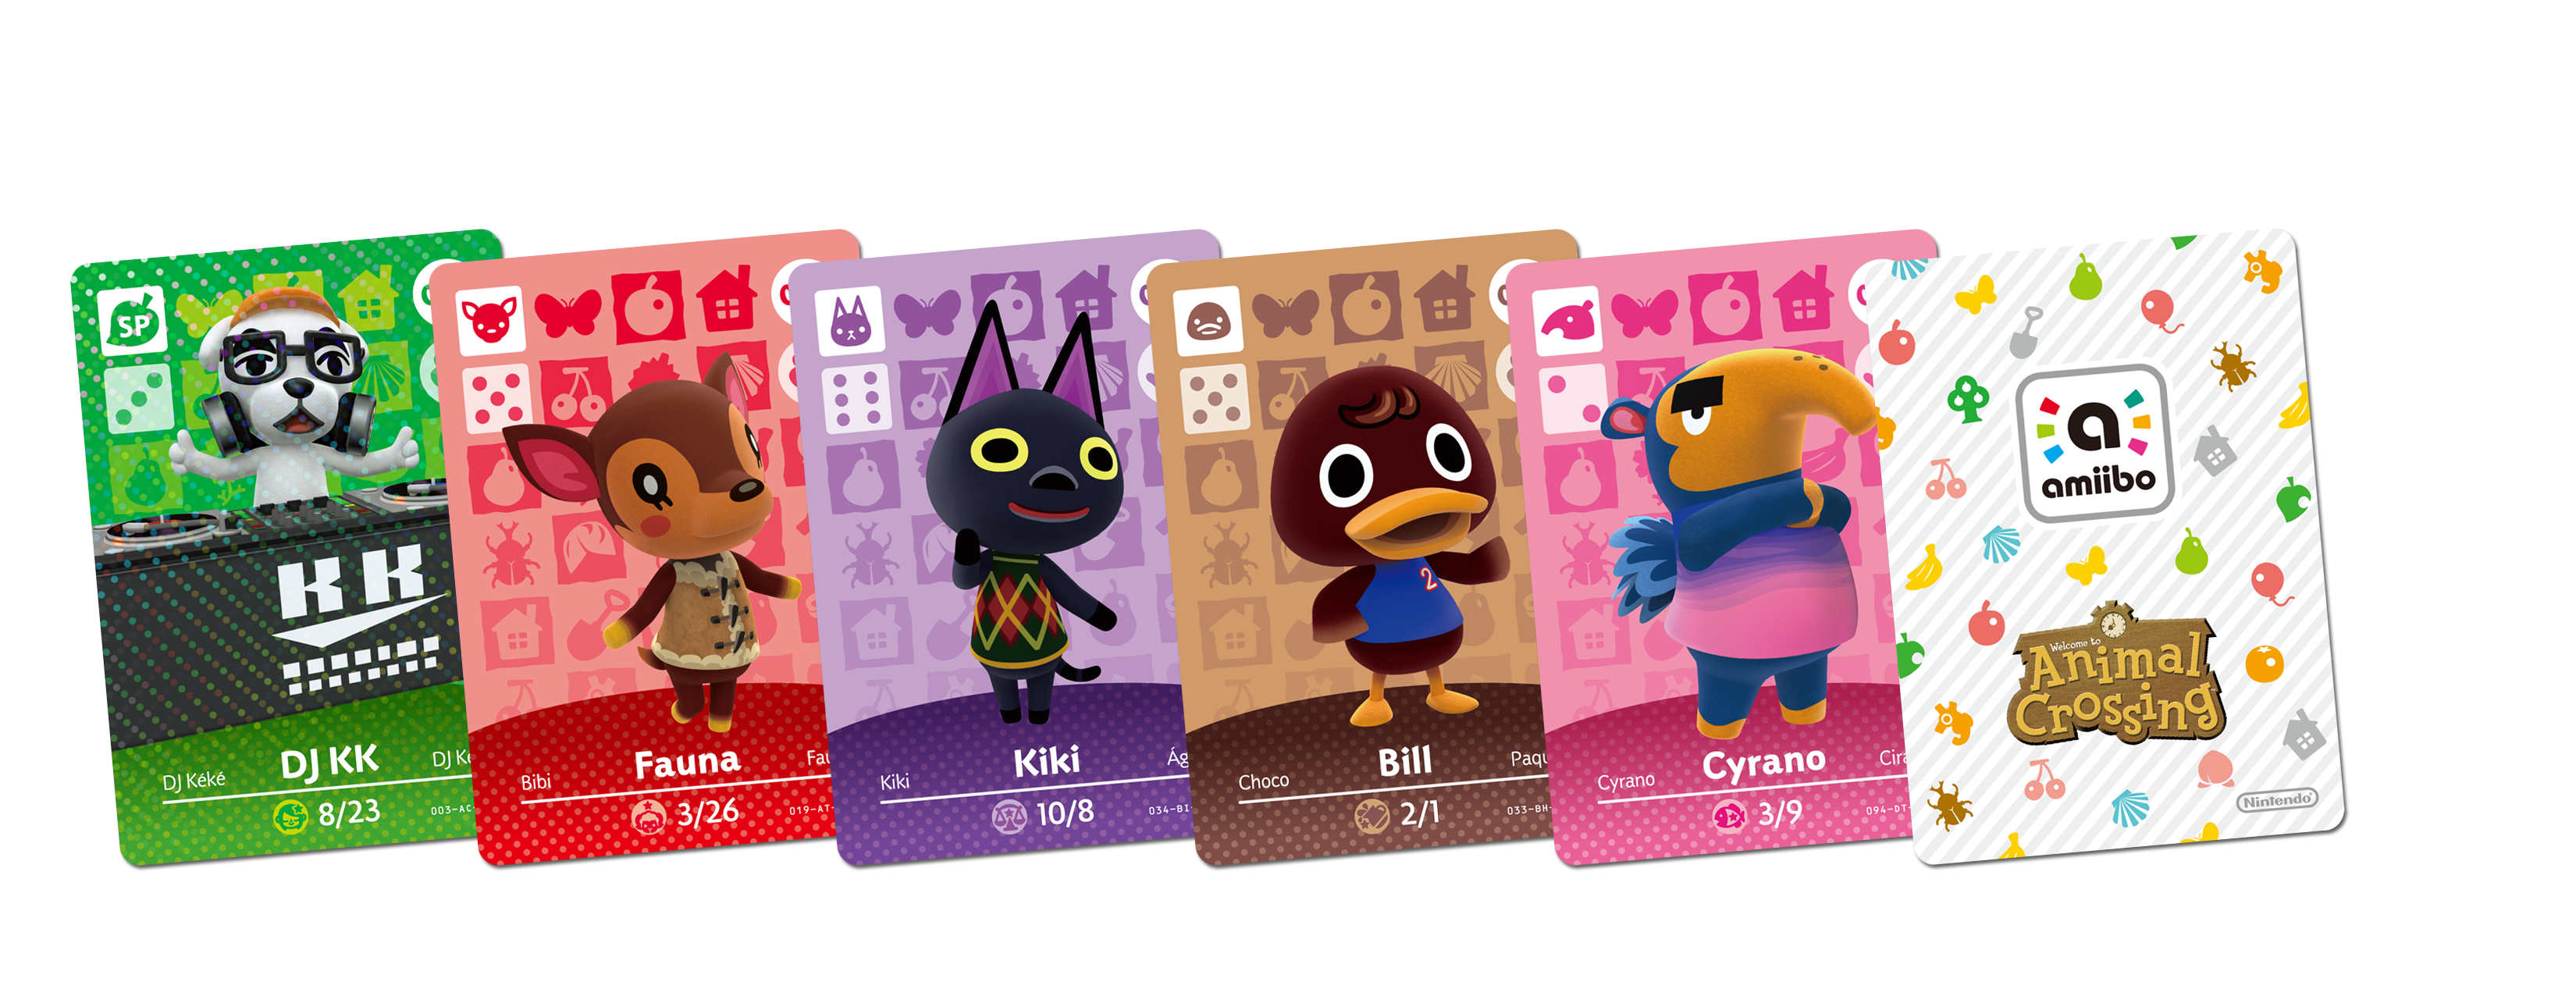 Animal Crossing Amiibo Cards Lists Information Animal Crossing World